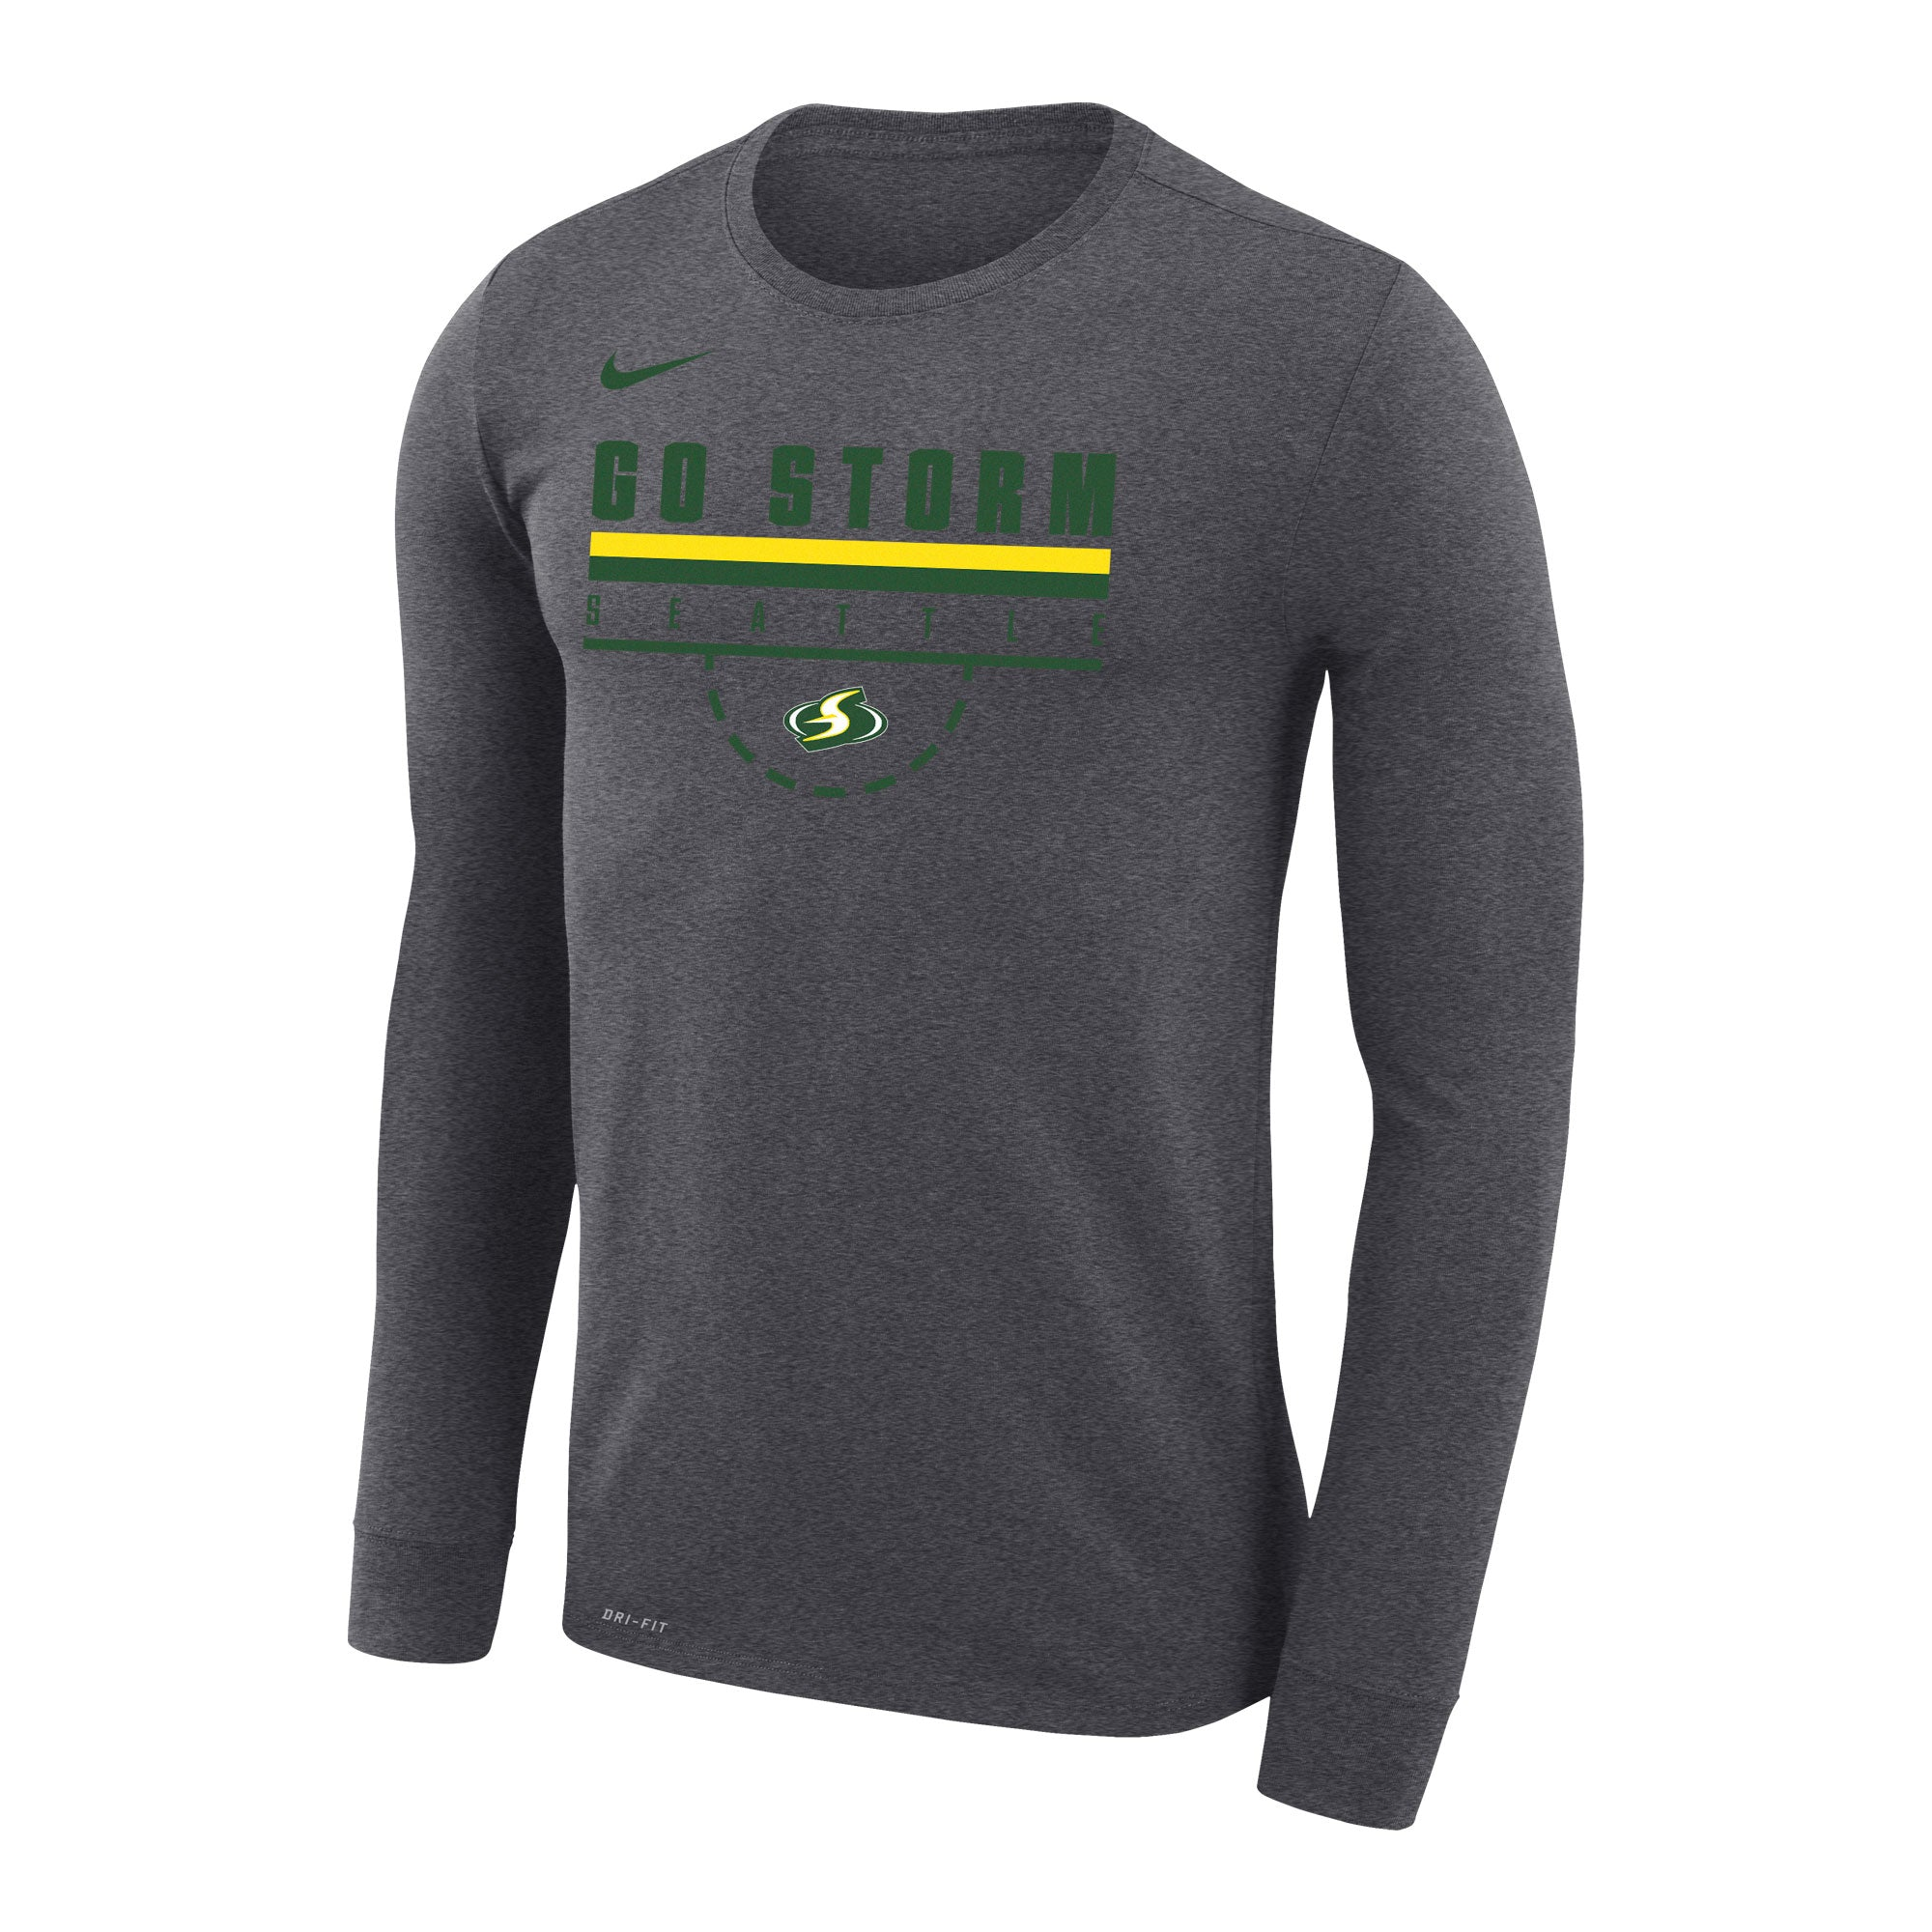 Go Storm Long Sleeve